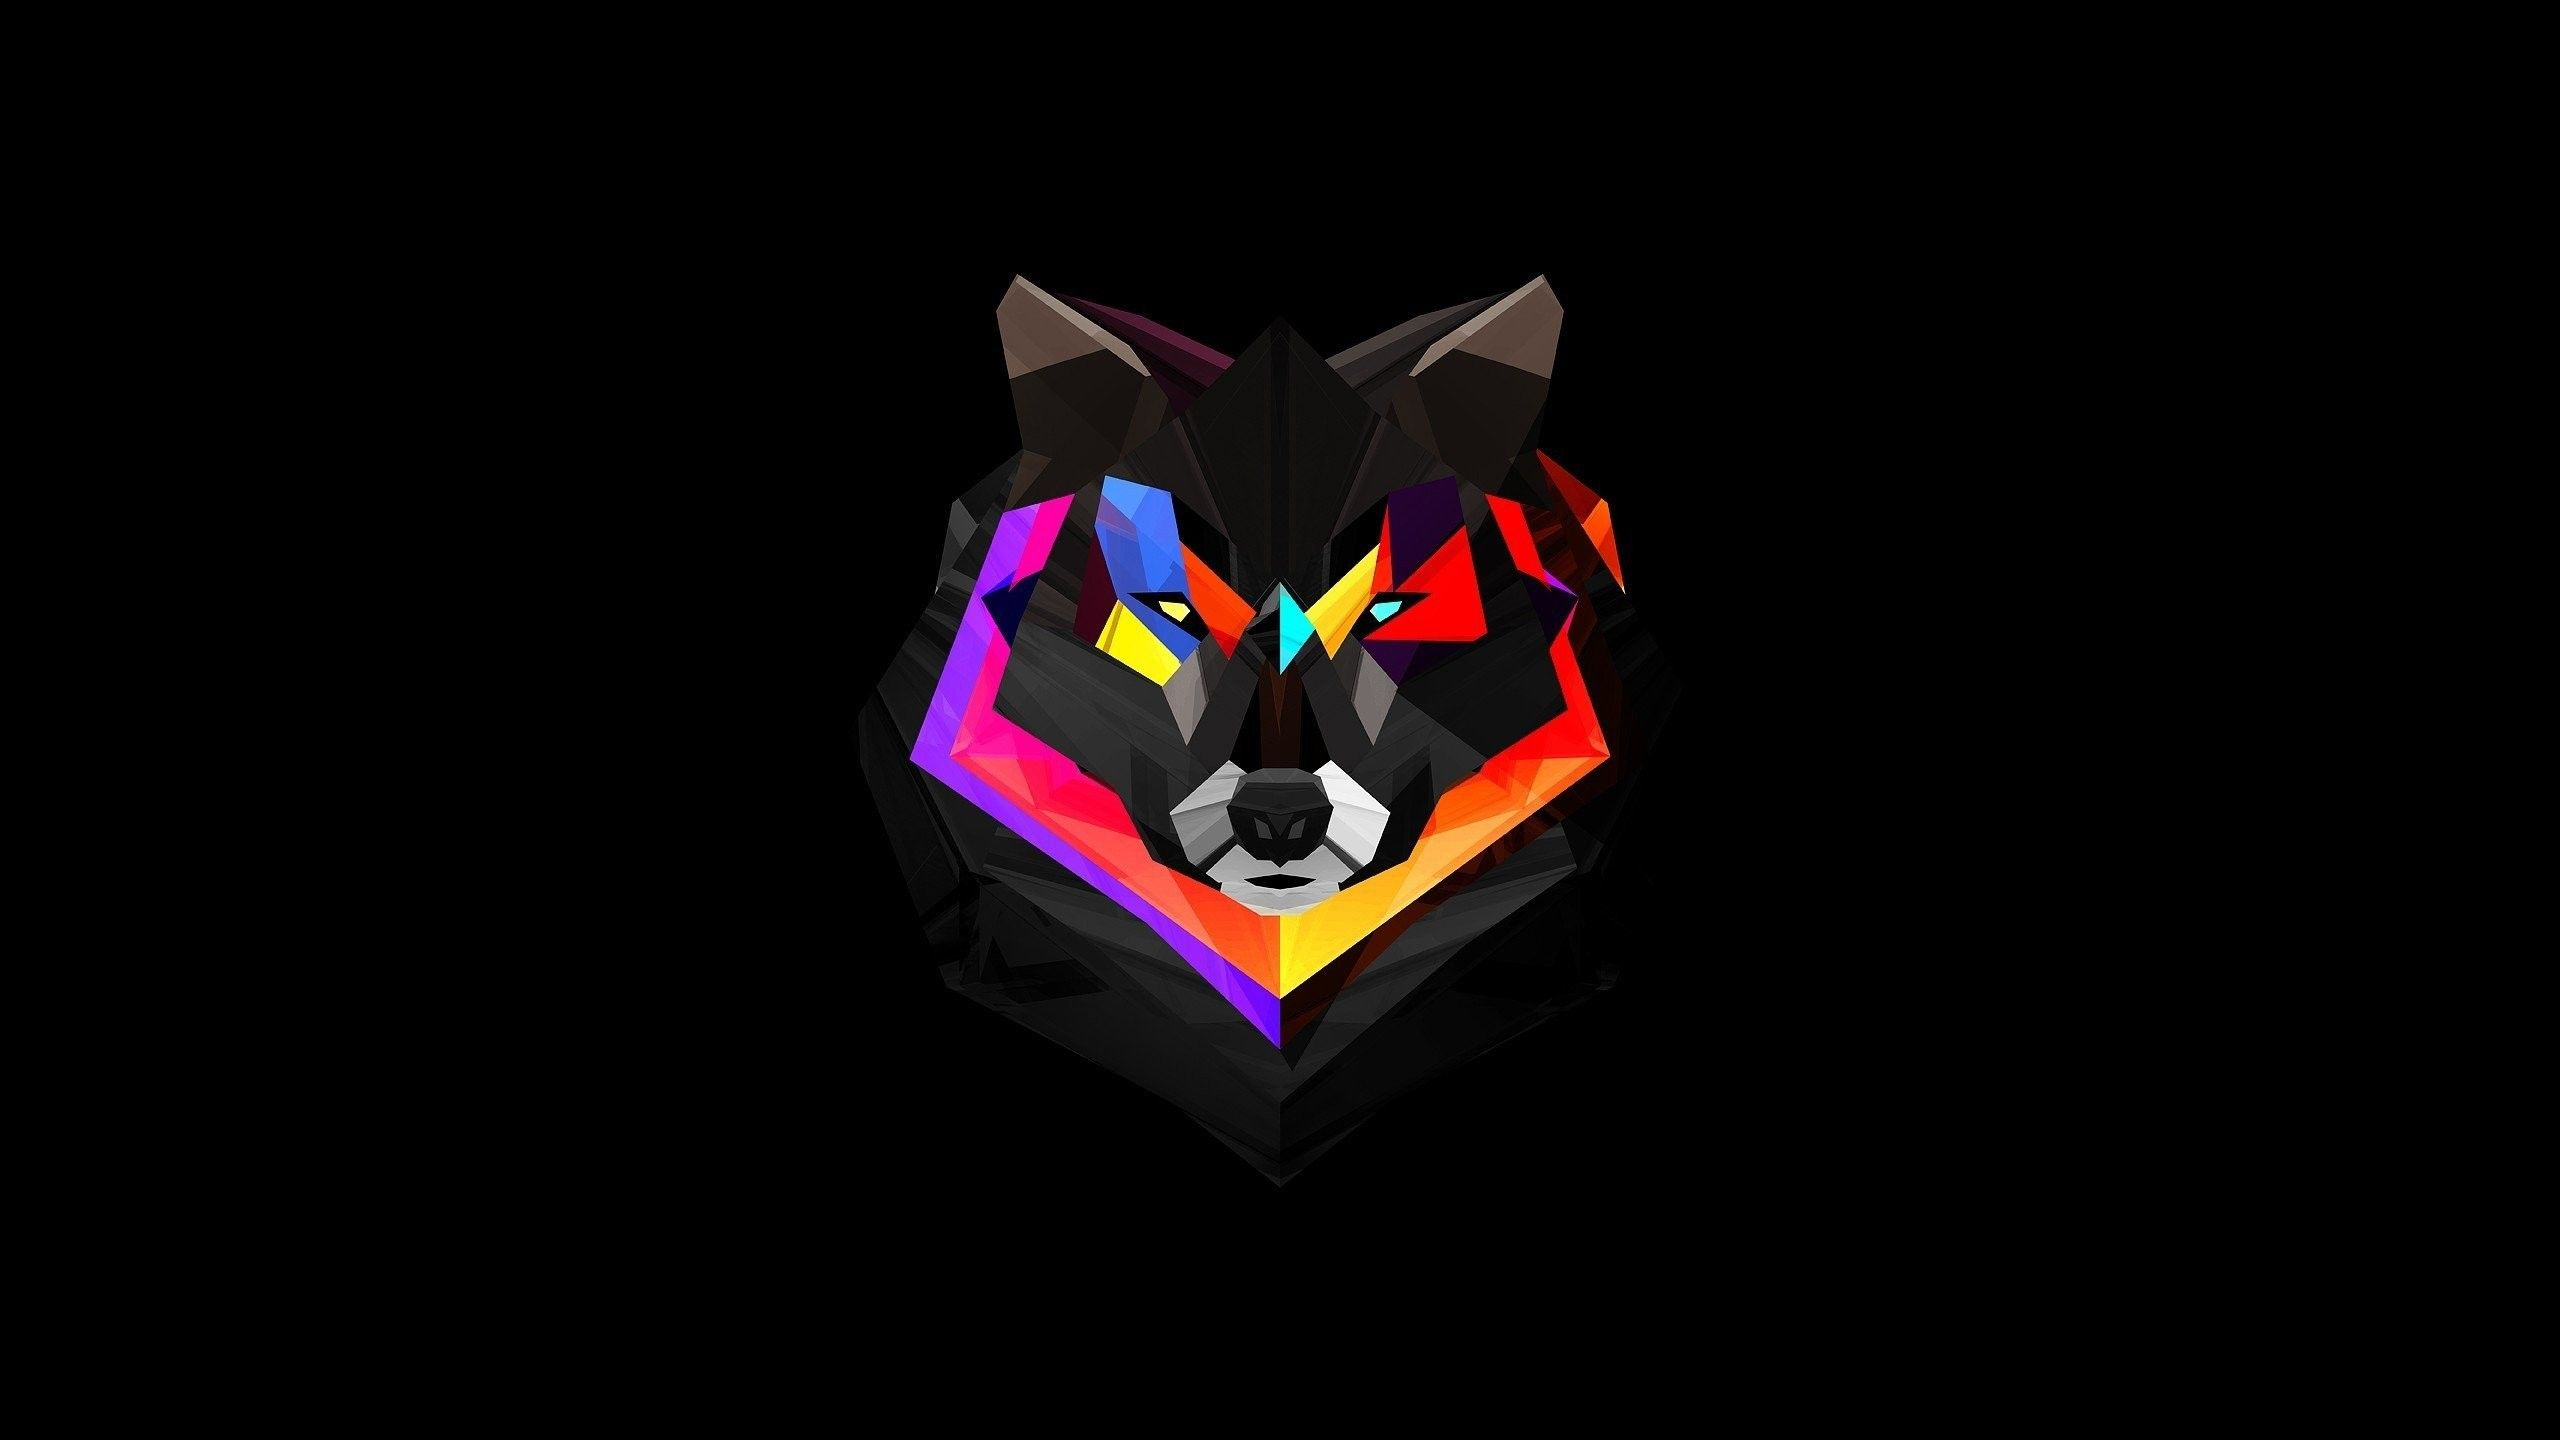 2560x1440 70+ Abstract Wolf Wallpapers on WallpaperPlay